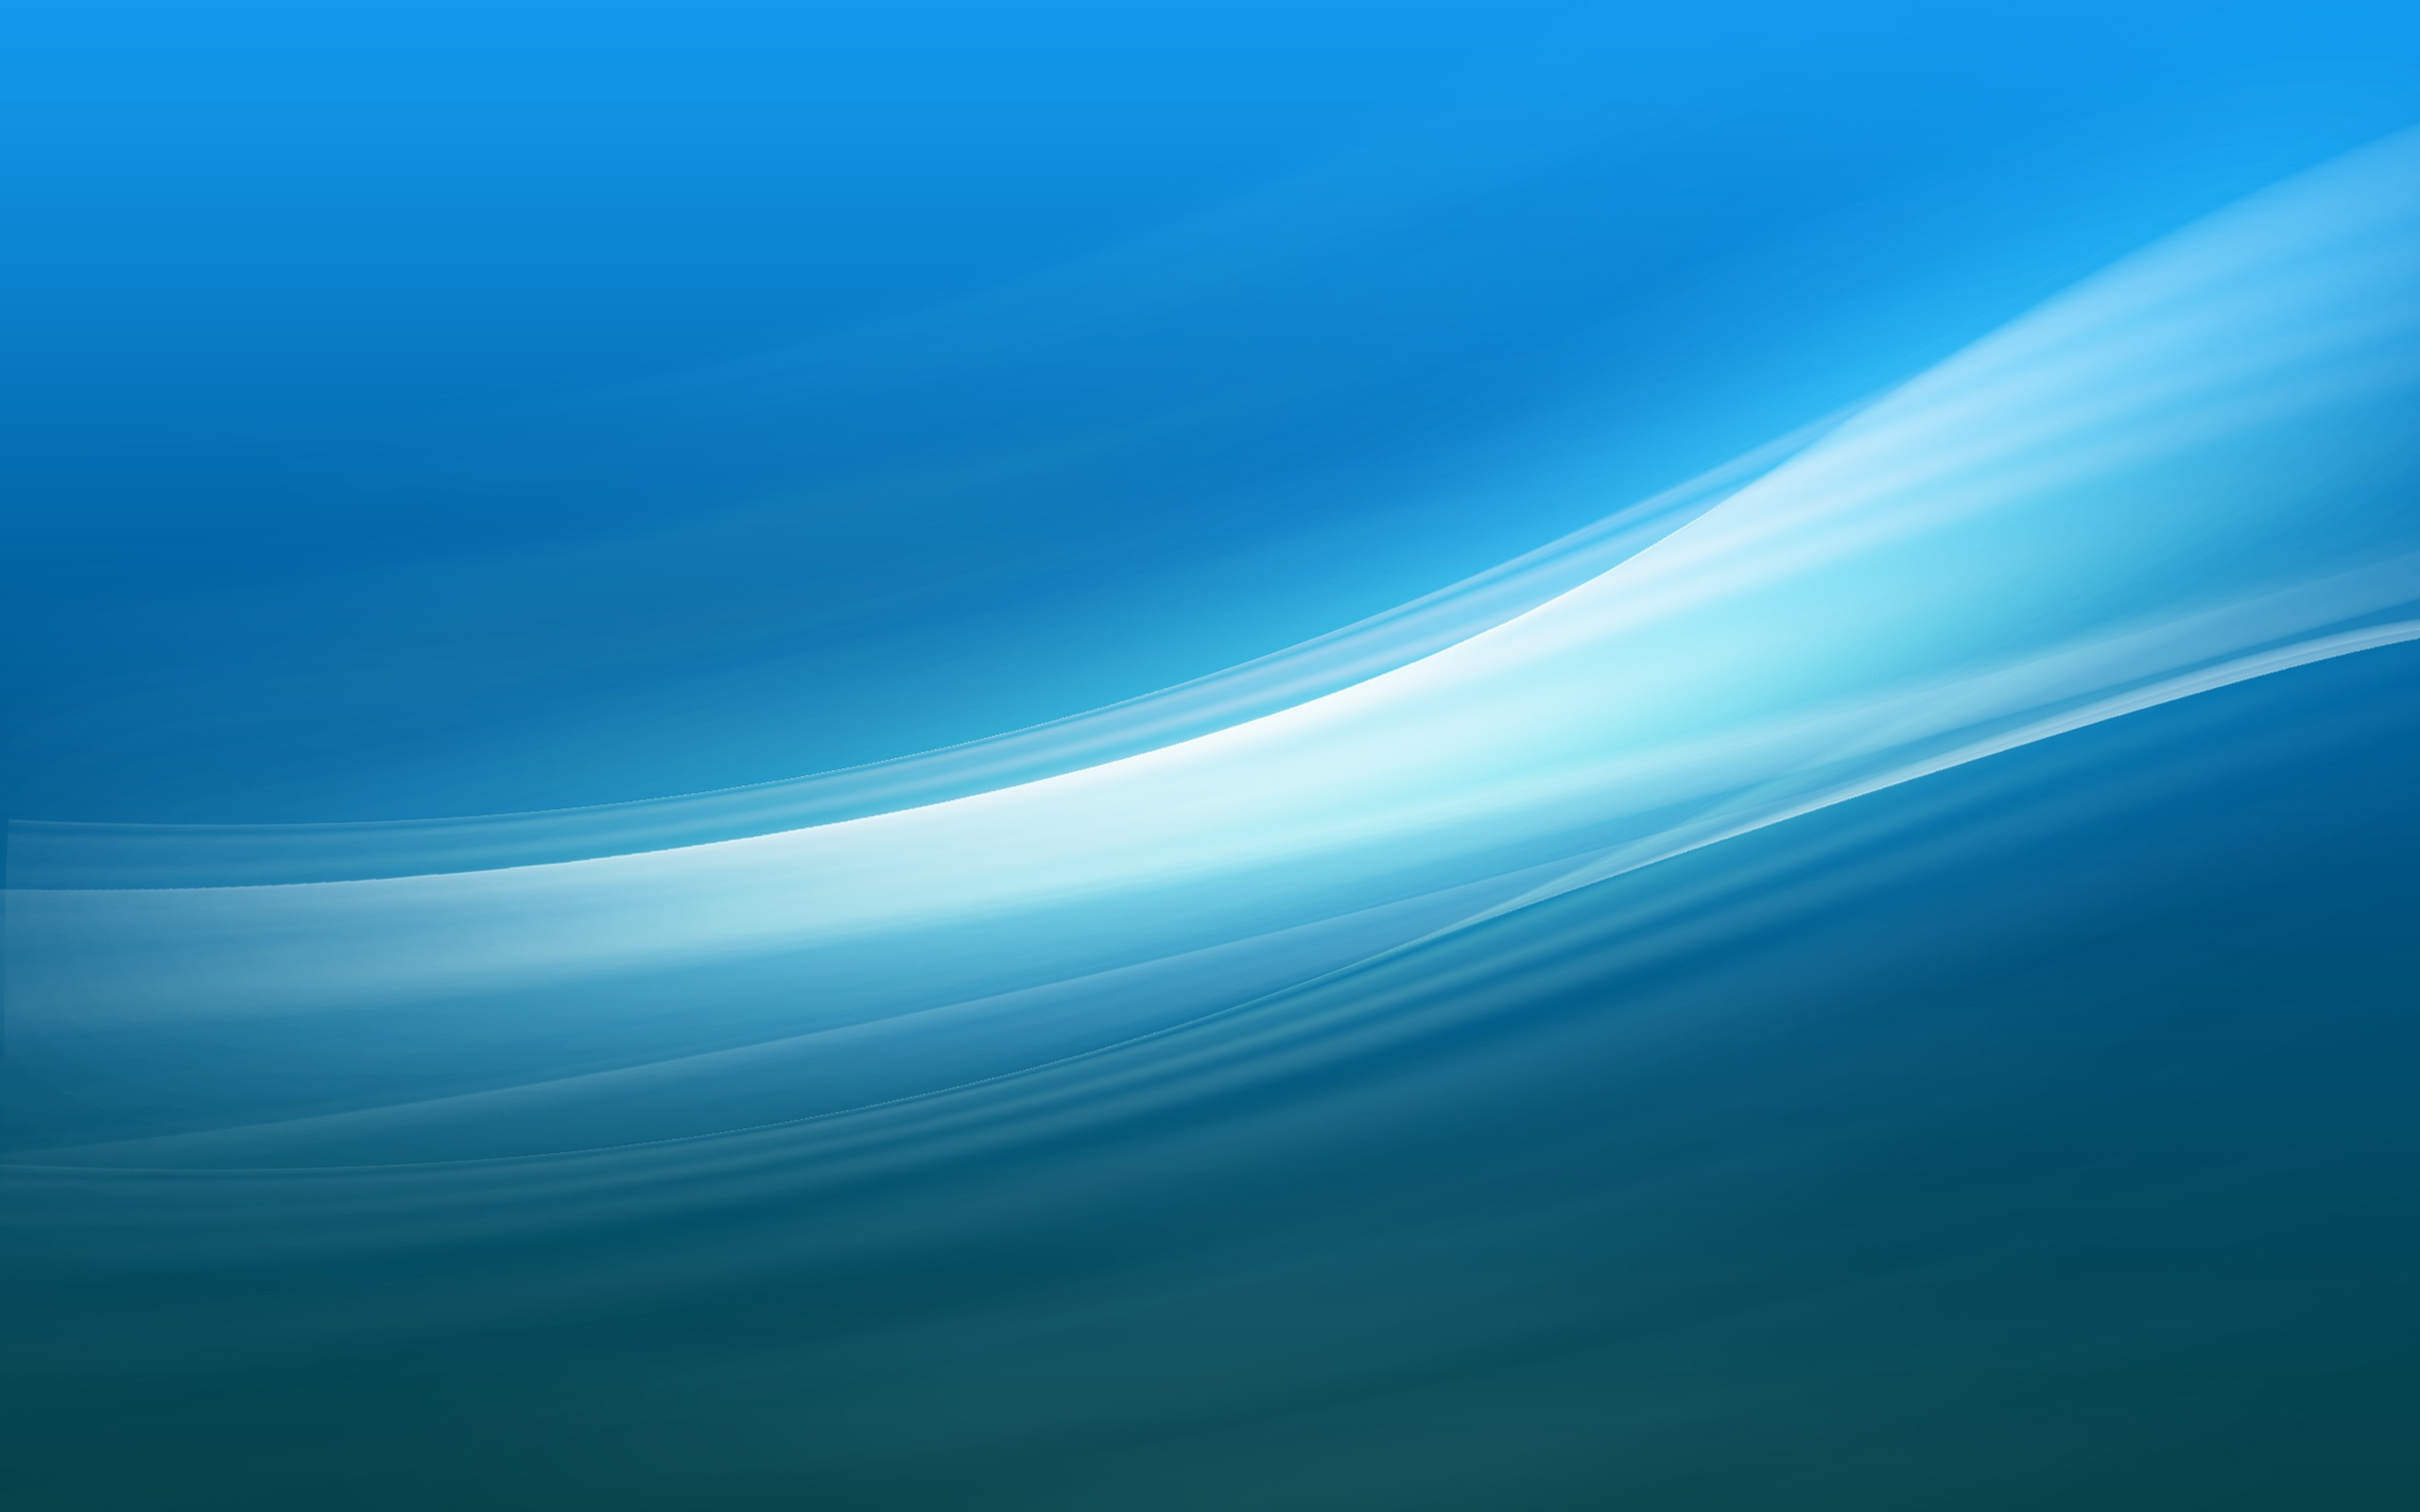 Unanticipated Blue Vector Waves Wallpaper 2560x1600px